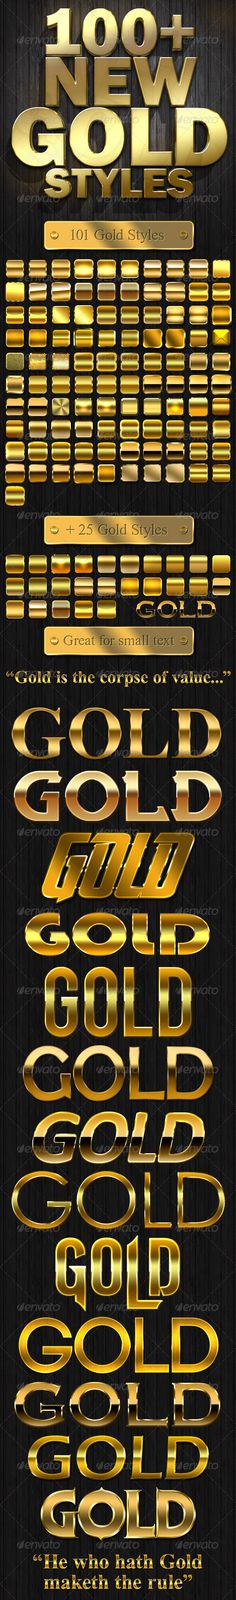 100+ New Gold Styles by HazZbroGaminG